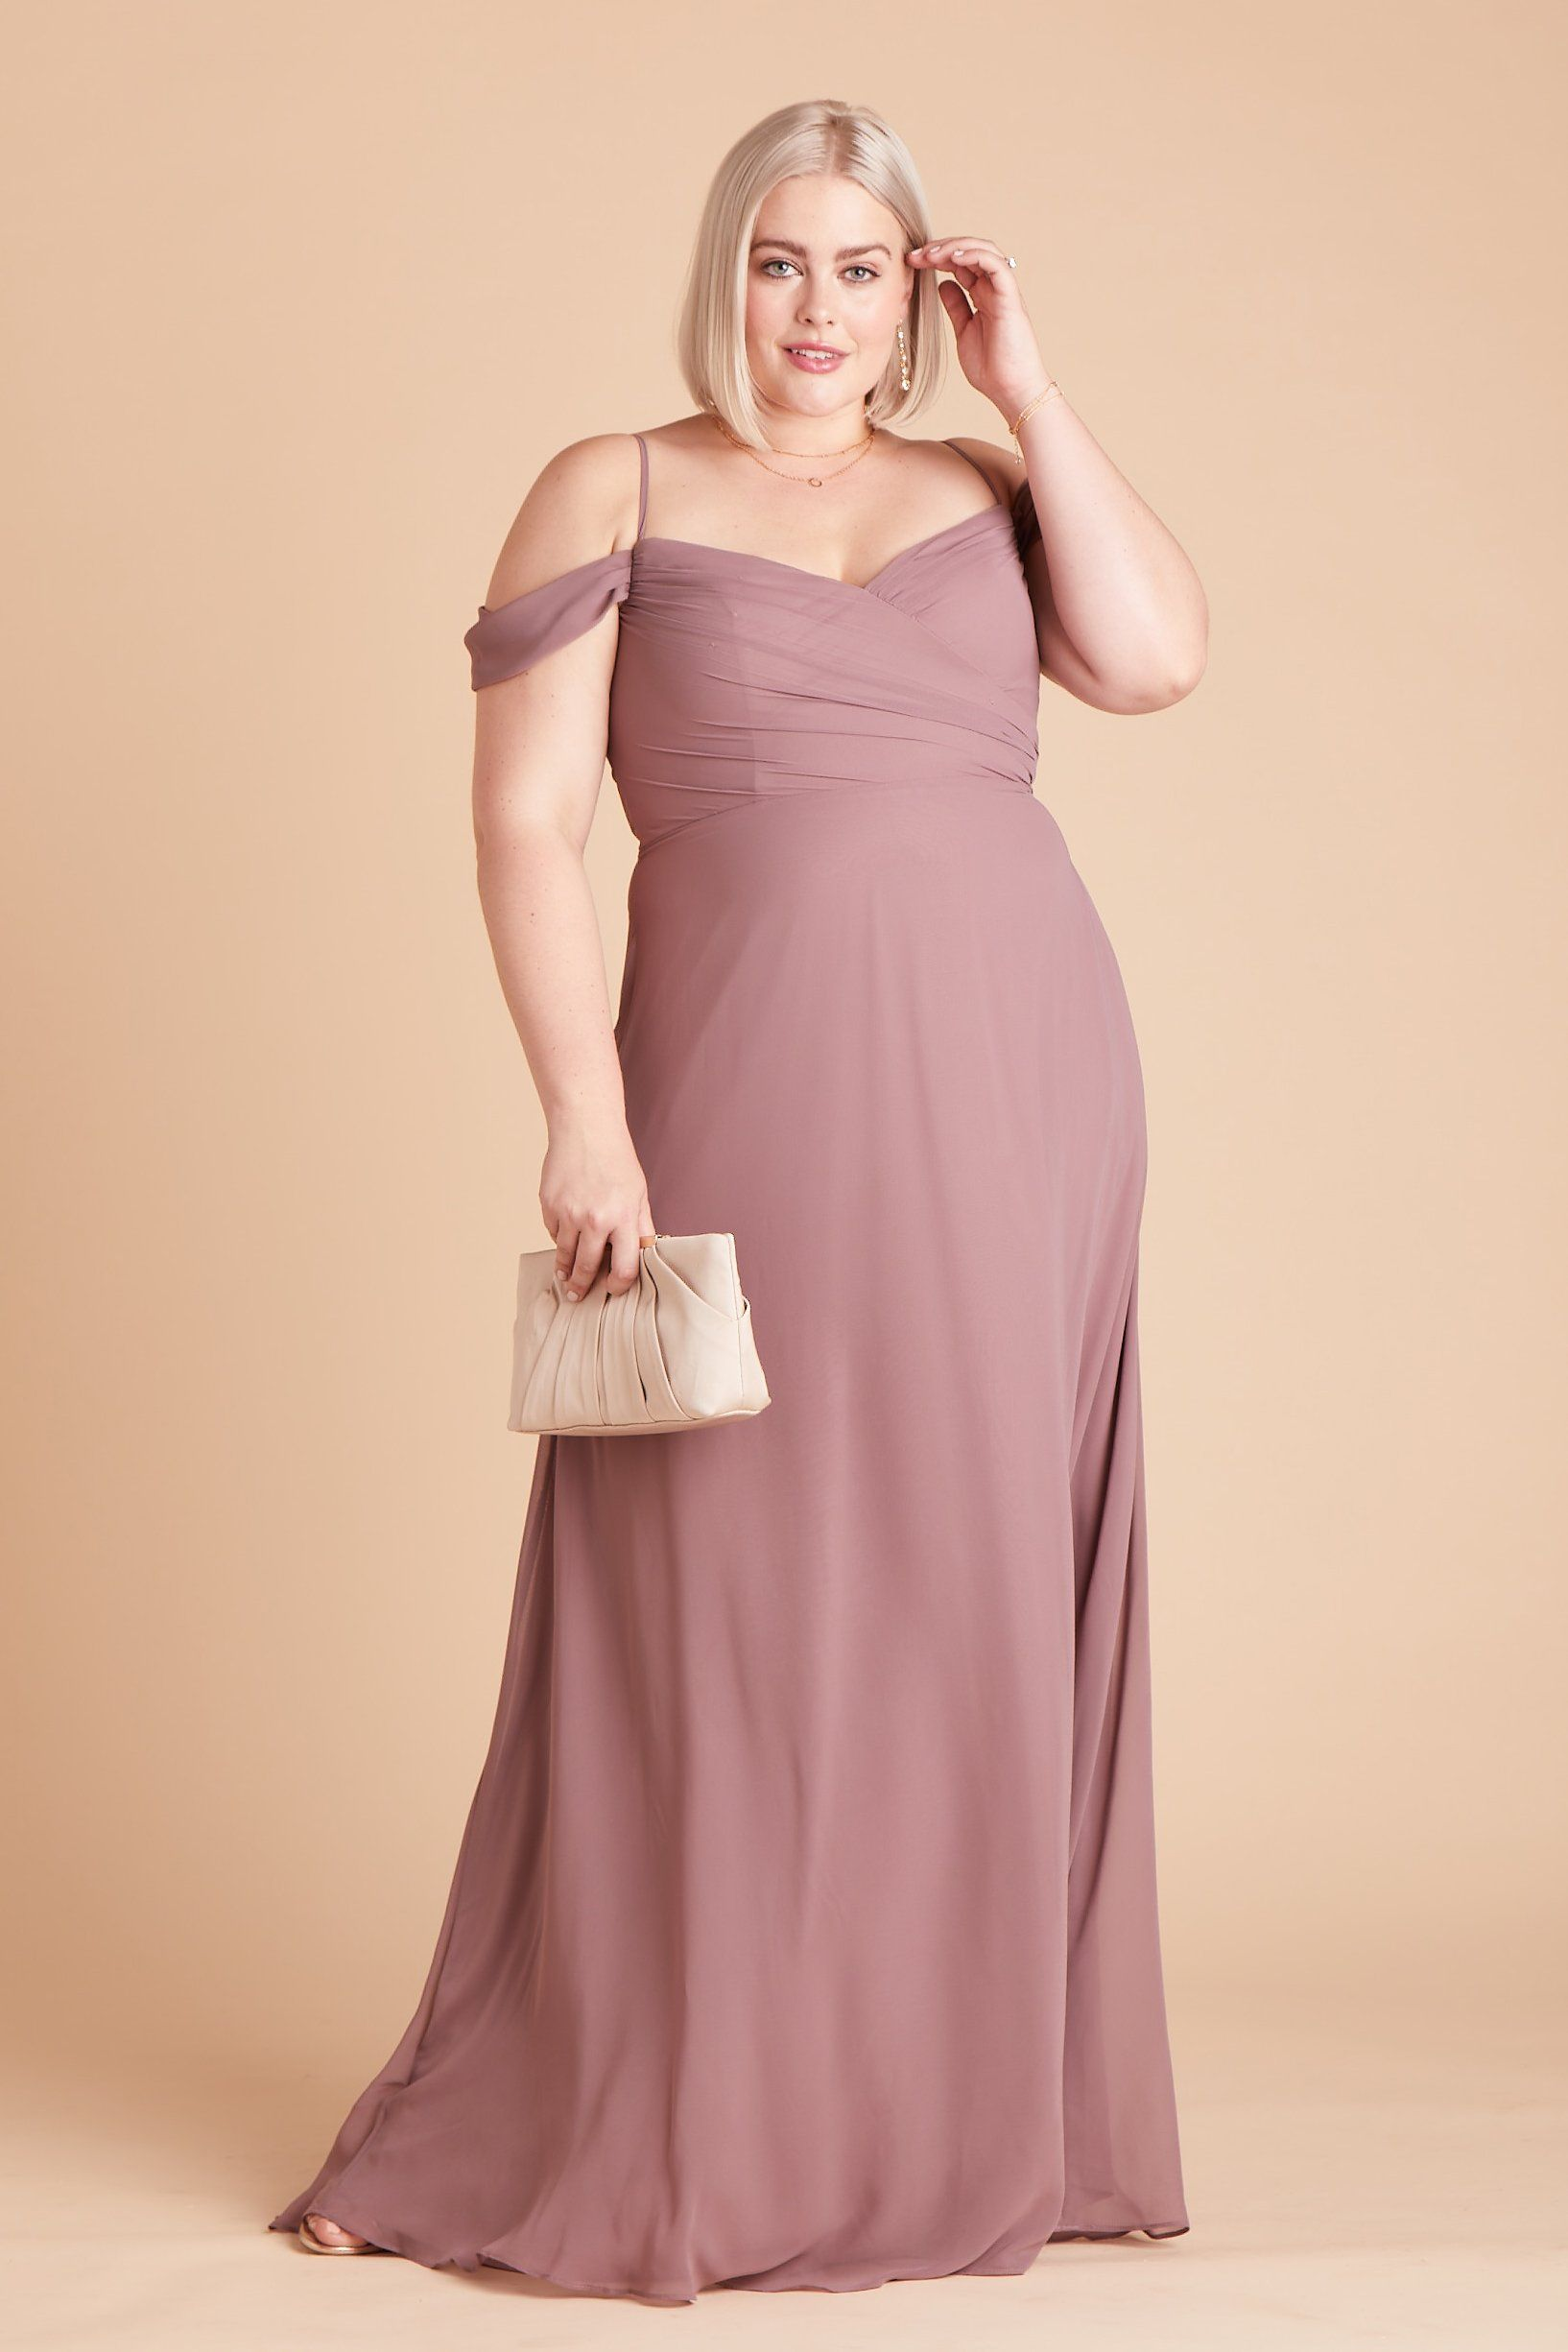 Spence Convertible Dress Curve Dark Mauve in 2020